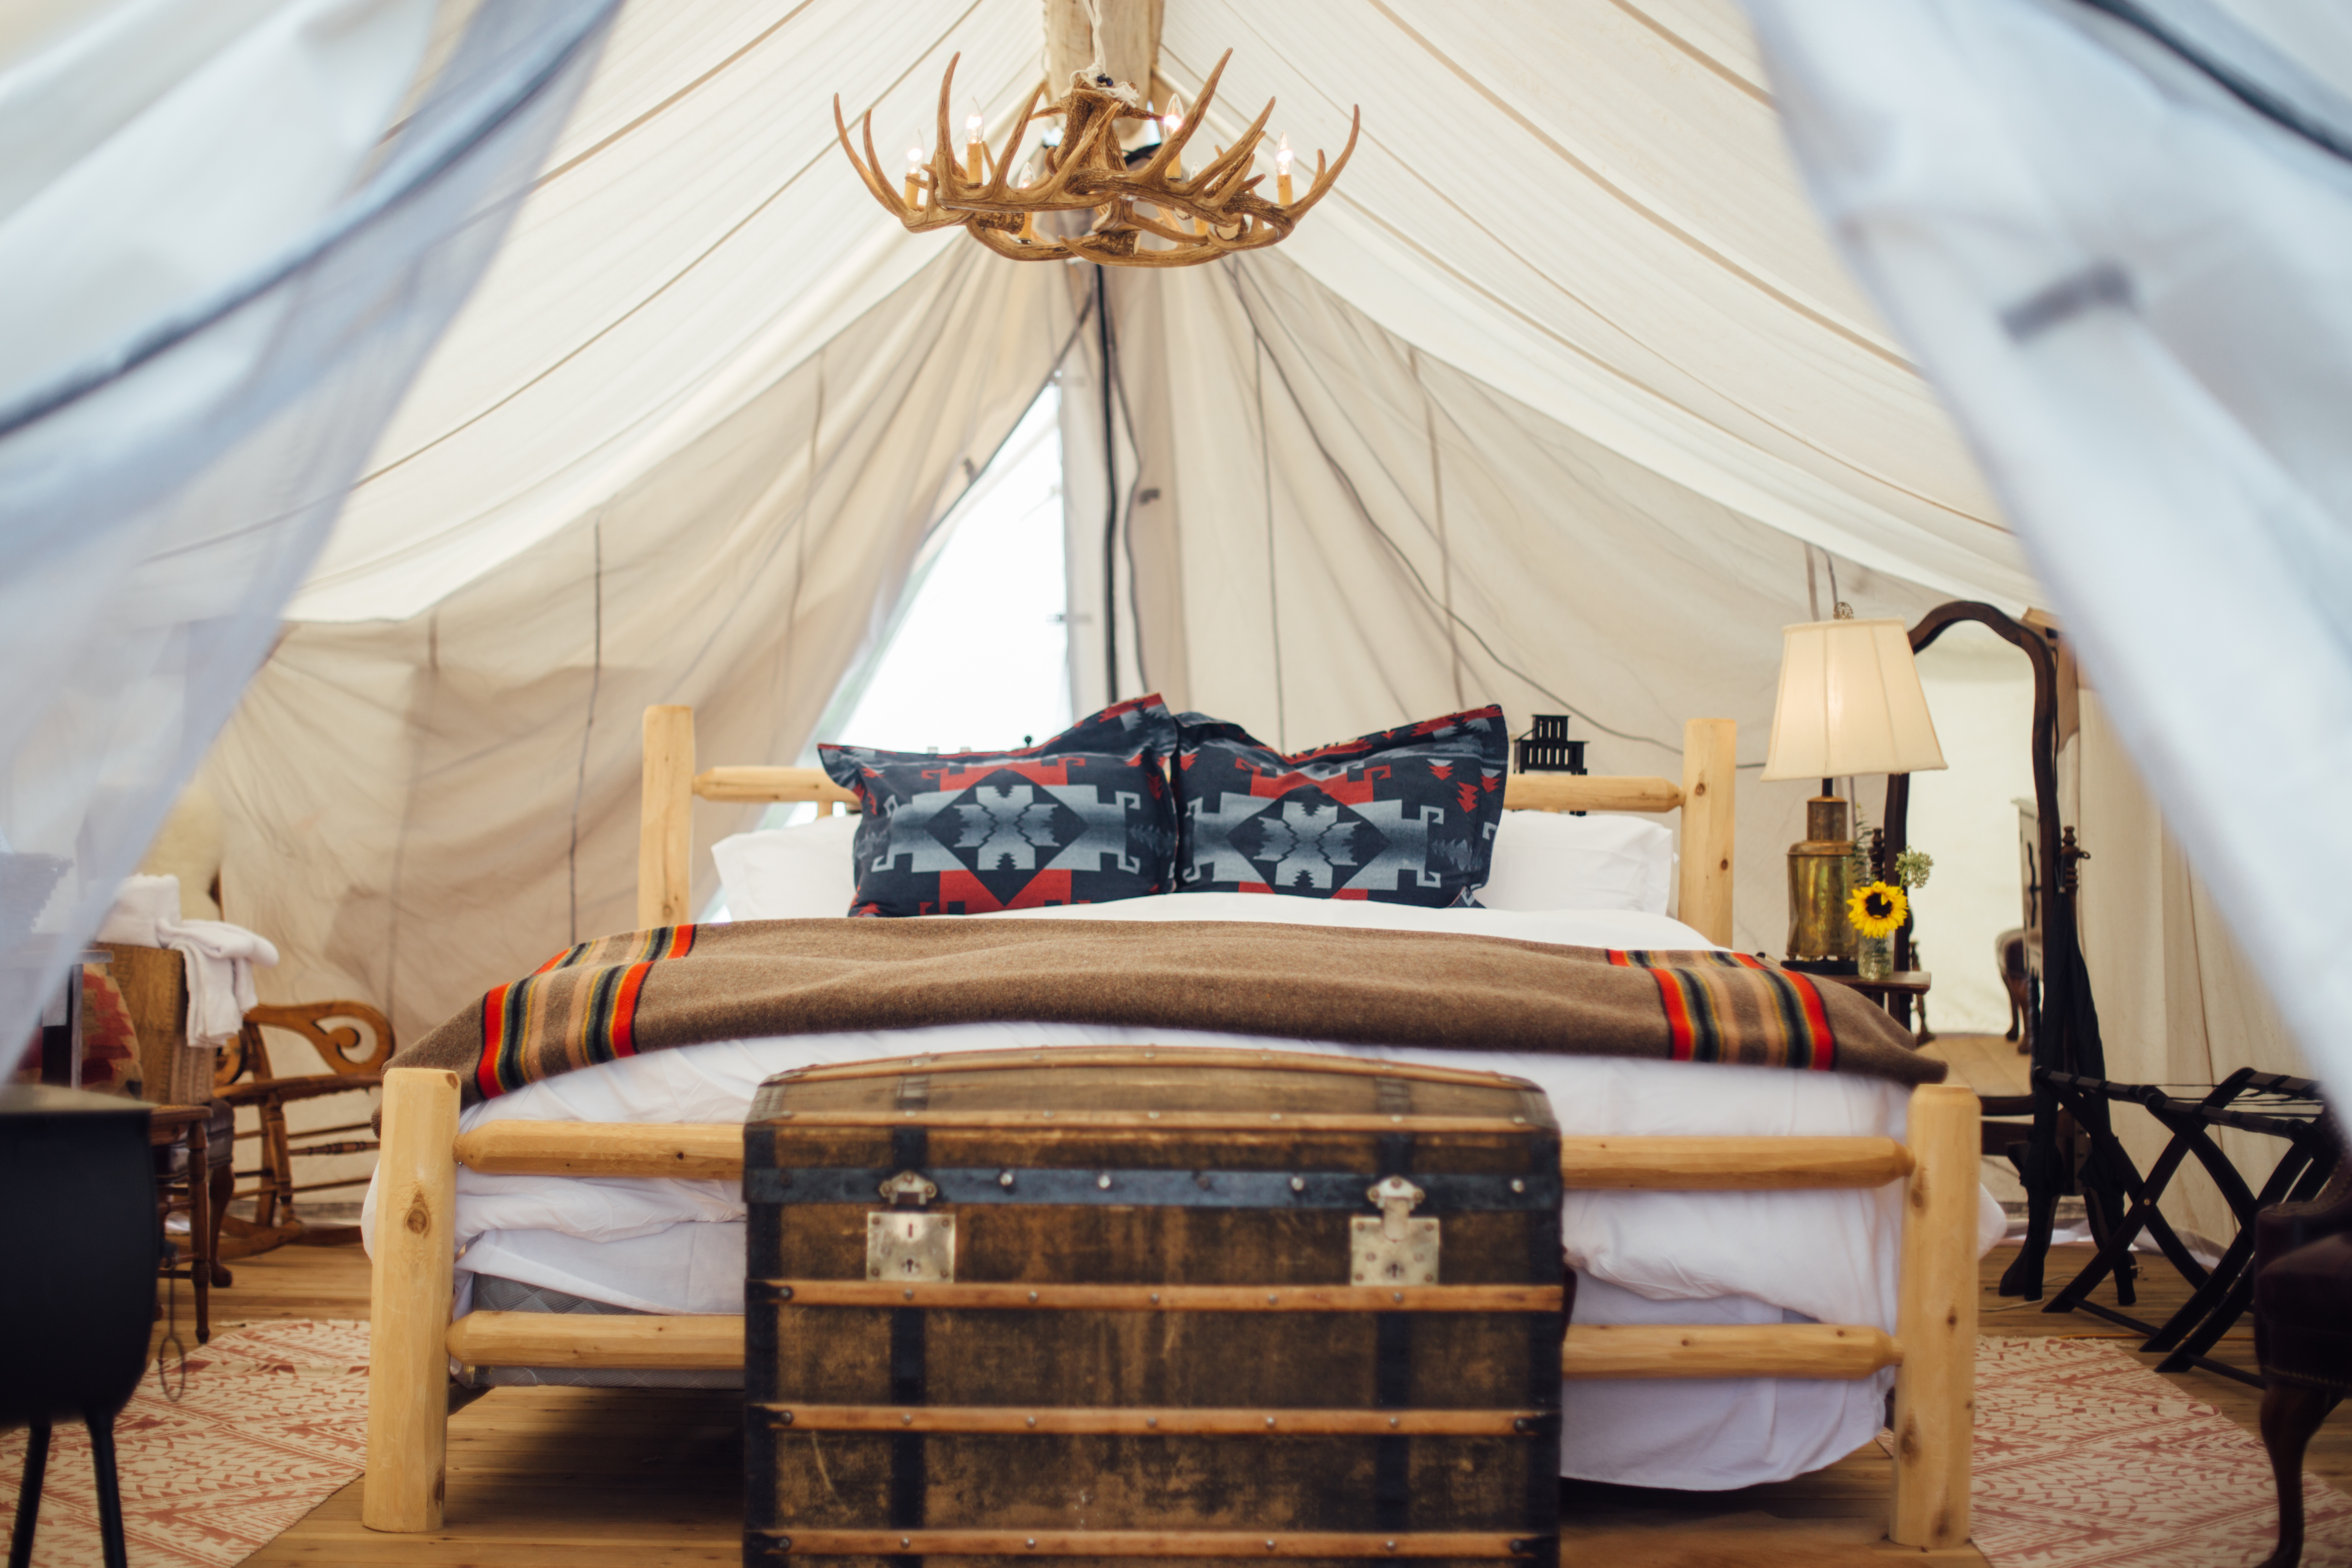 A luxury tent in Vail, Colorado for glamping featuring Egyptian cotton sheets